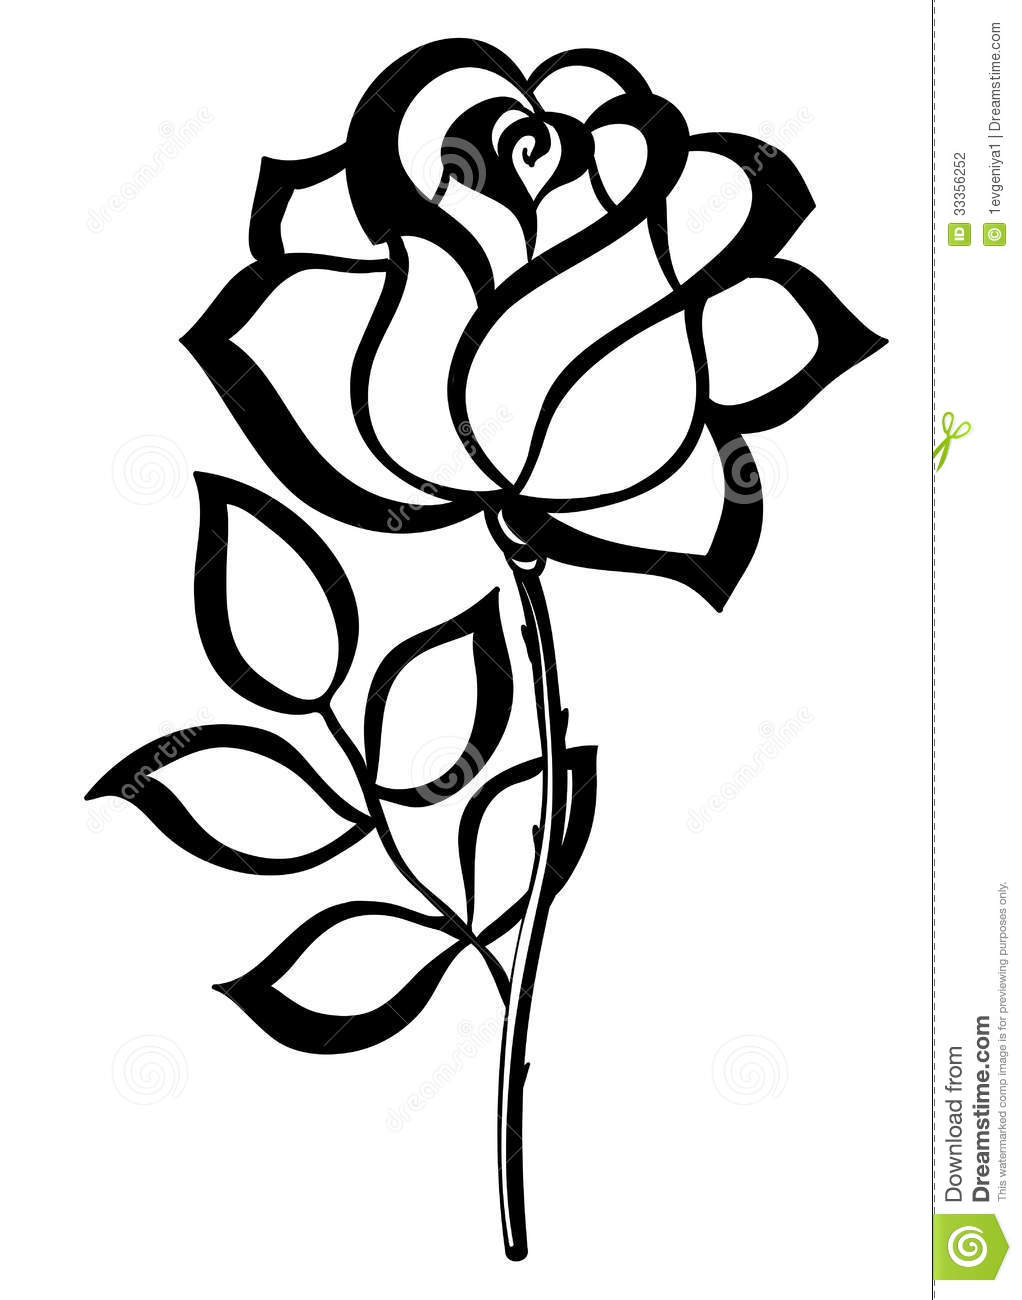 White Rose clipart silhouette  silhouette simple rose rose